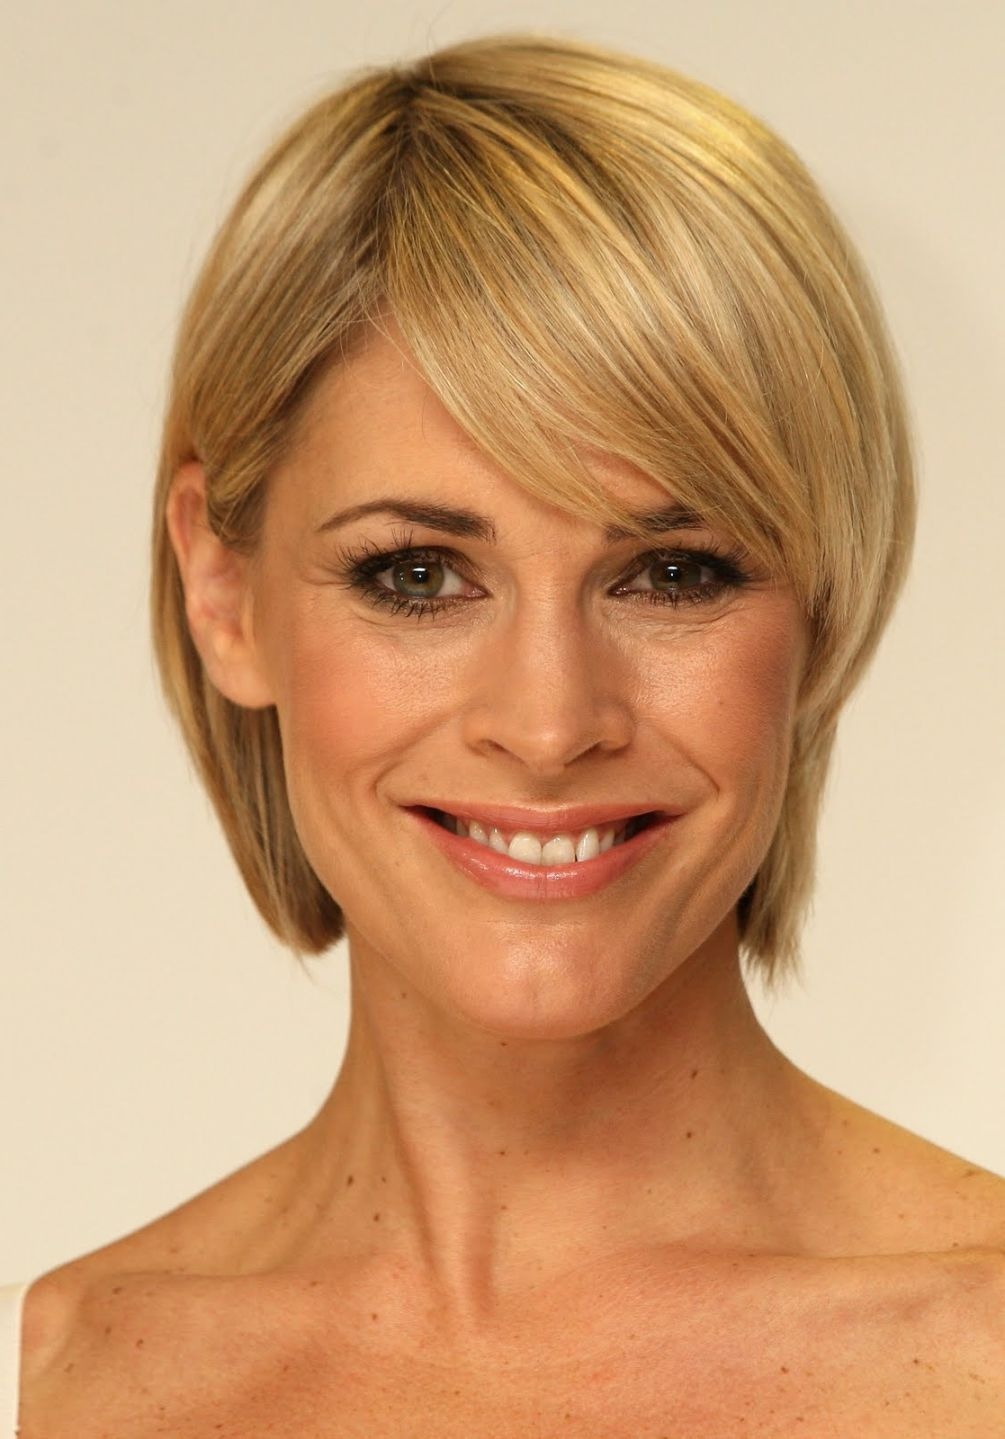 Short hairstyles for thin hair and oval face photo style